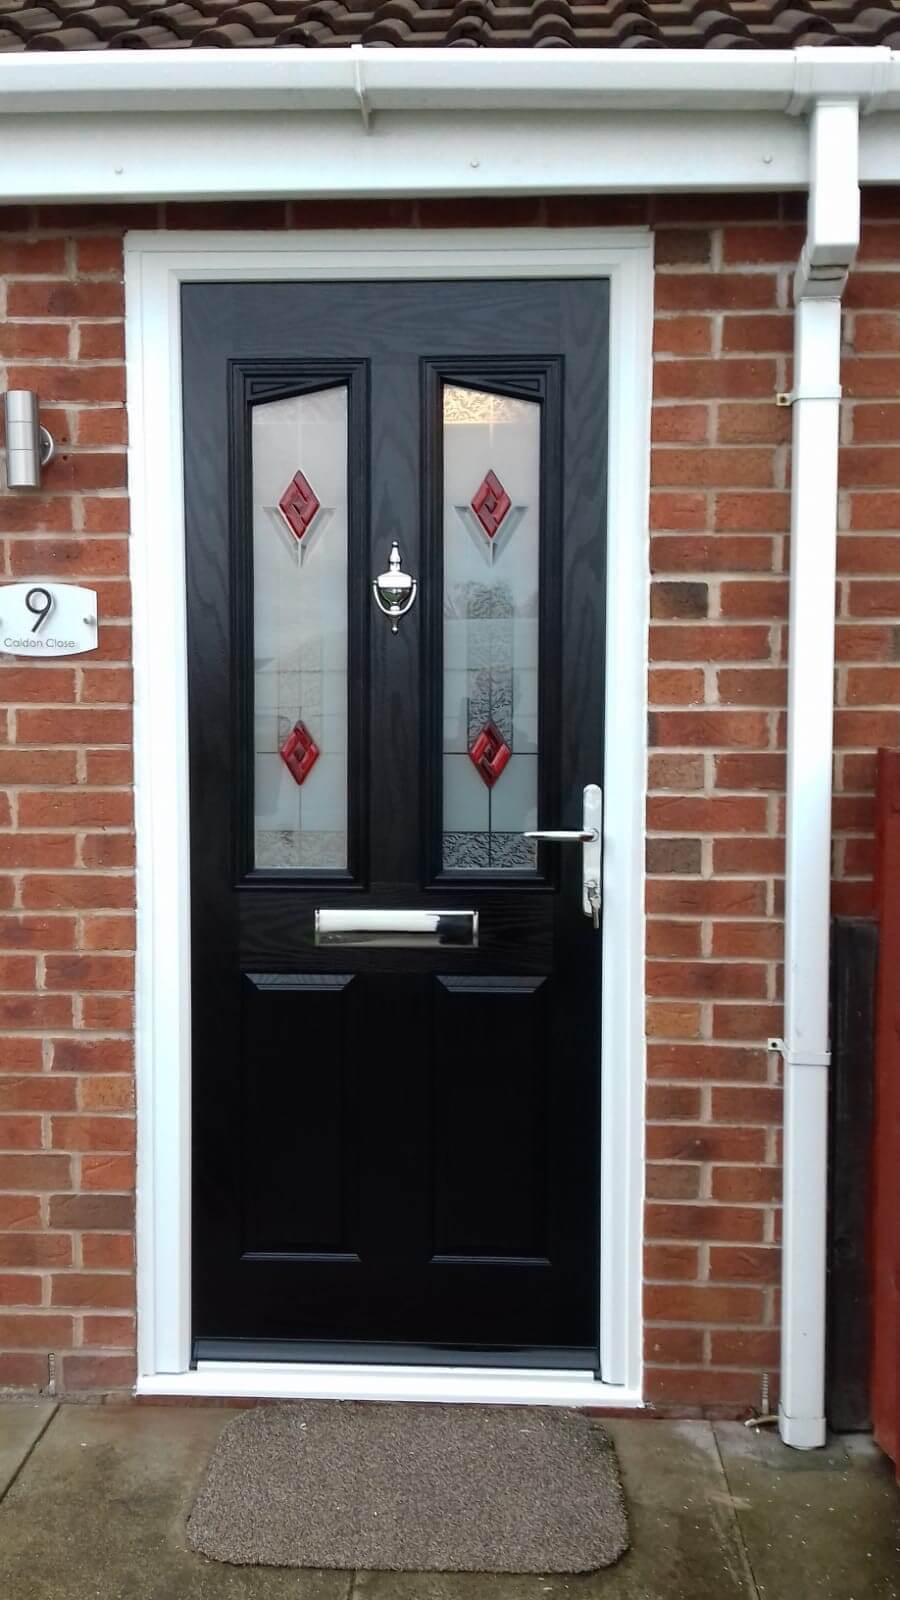 pvcu, upvc, pvc, front door, composite, black, Crosby, liverpool, celsius home improvements